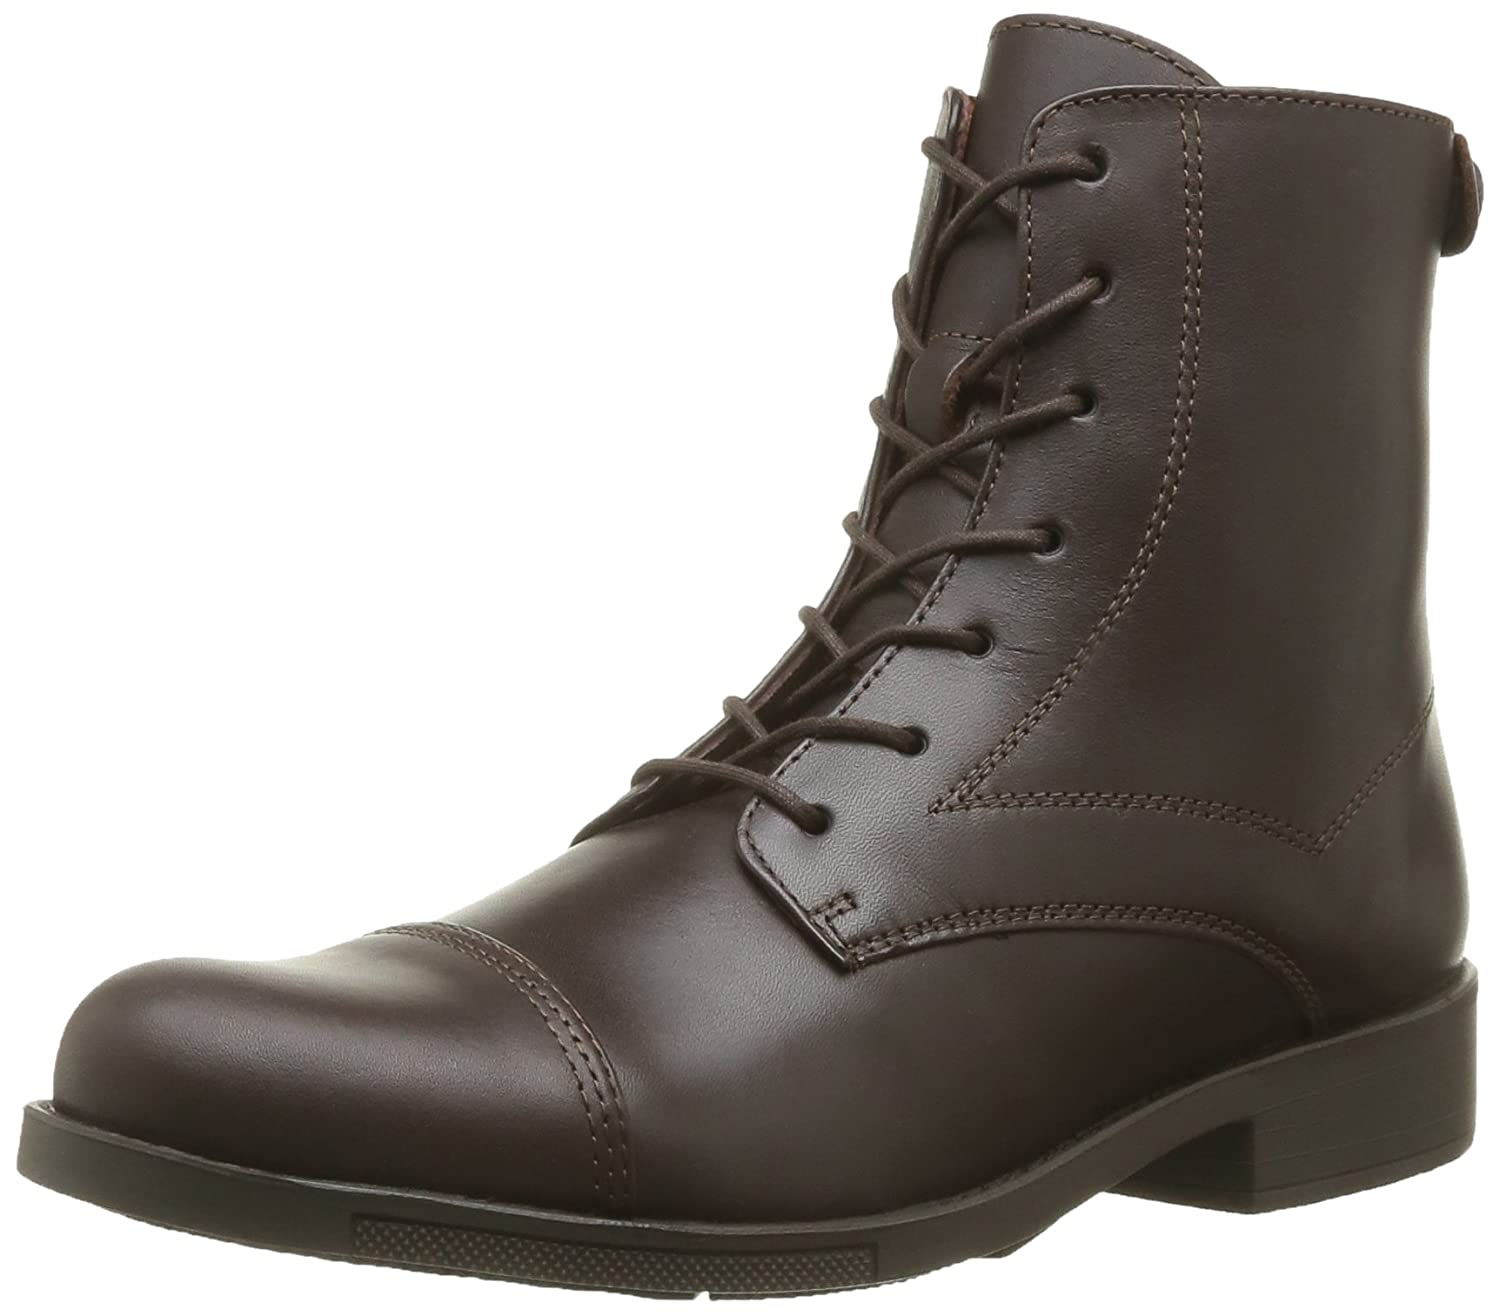 Aigle - Isaro - Chaussure d'equitation - Homme